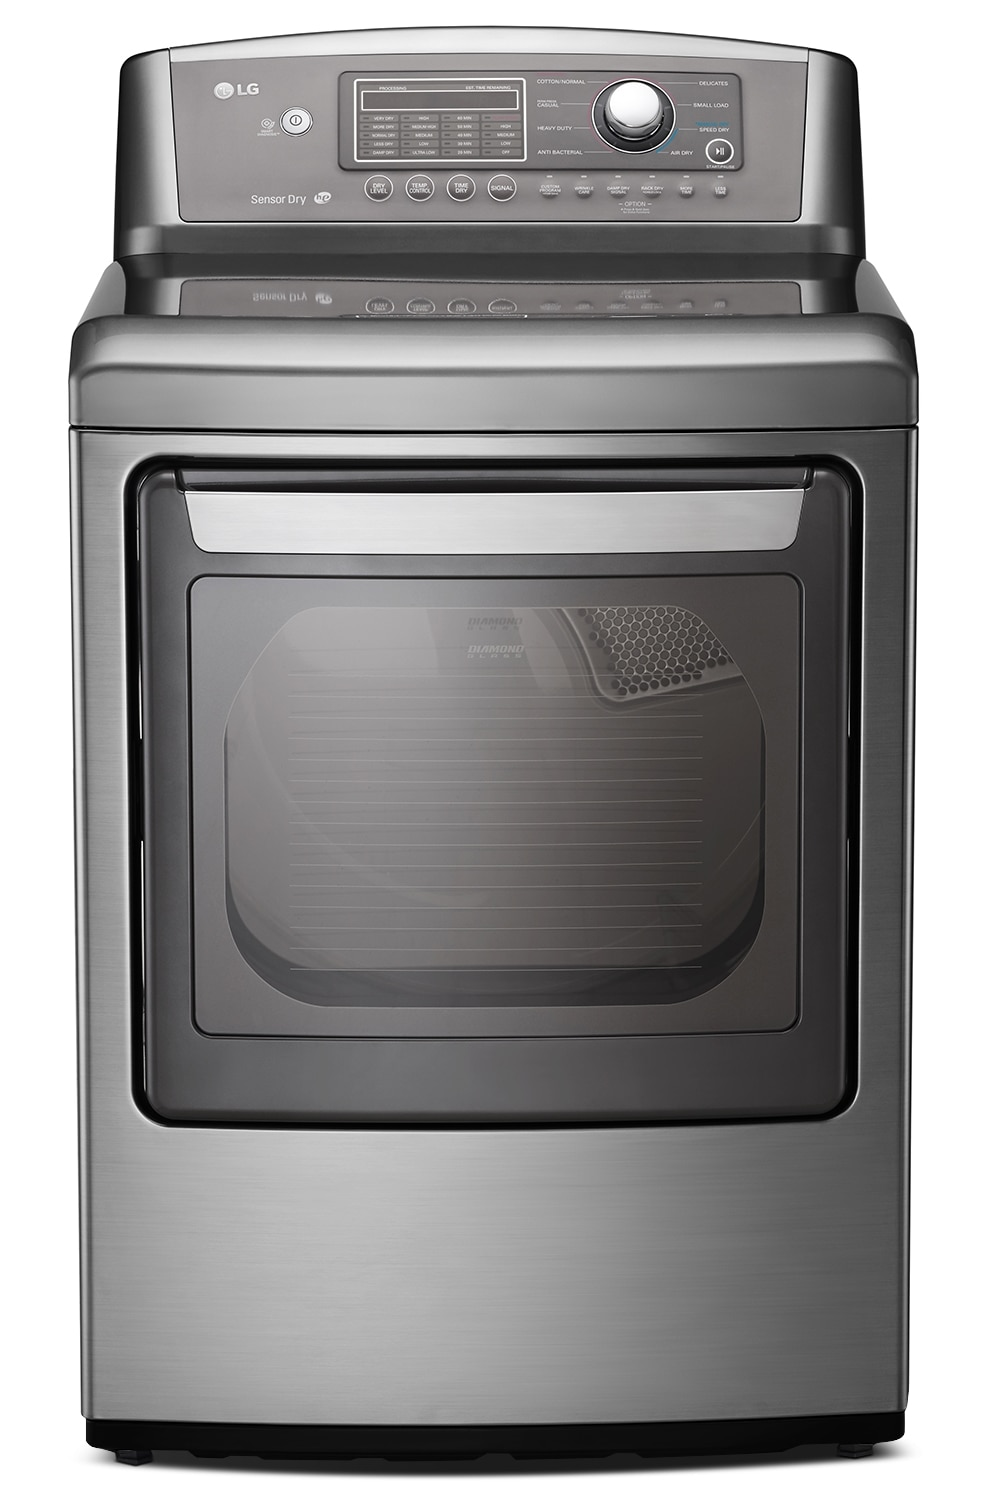 LG Appliances Graphite Steel Electric Dryer (7.3 Cu. Ft.) - DLE5270V